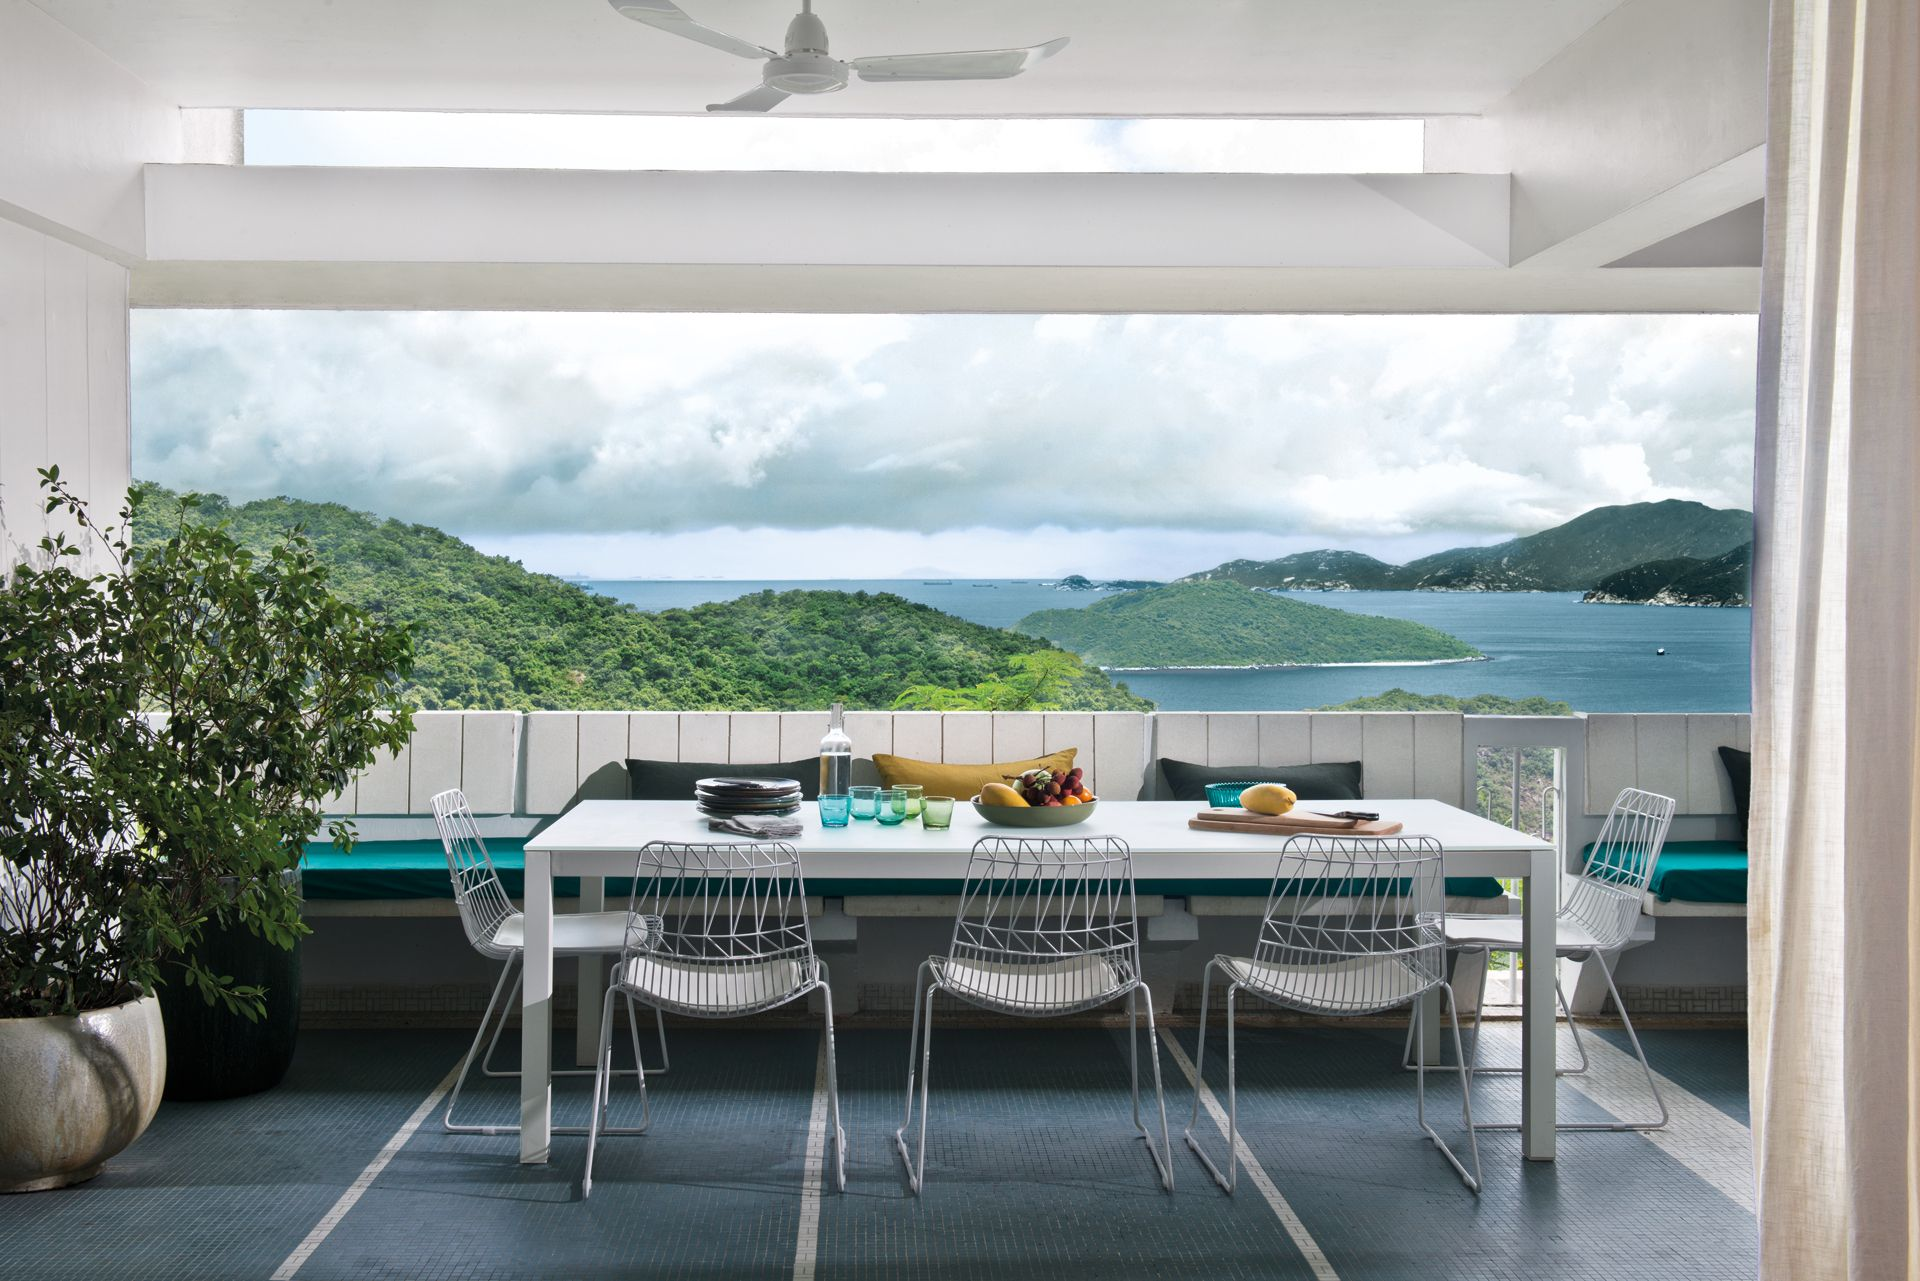 Home Tour: Bayside Sanctuary With A Stunning View